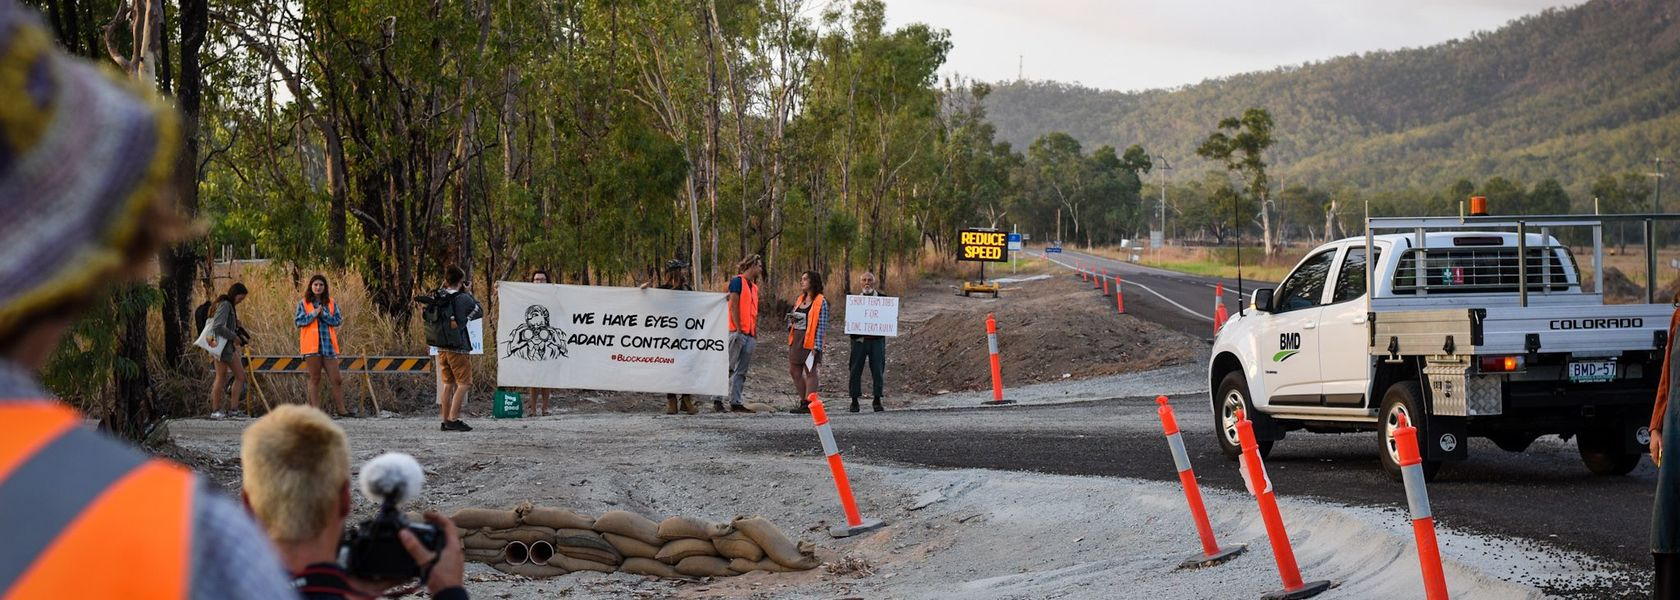 Work disrupted at Adani site